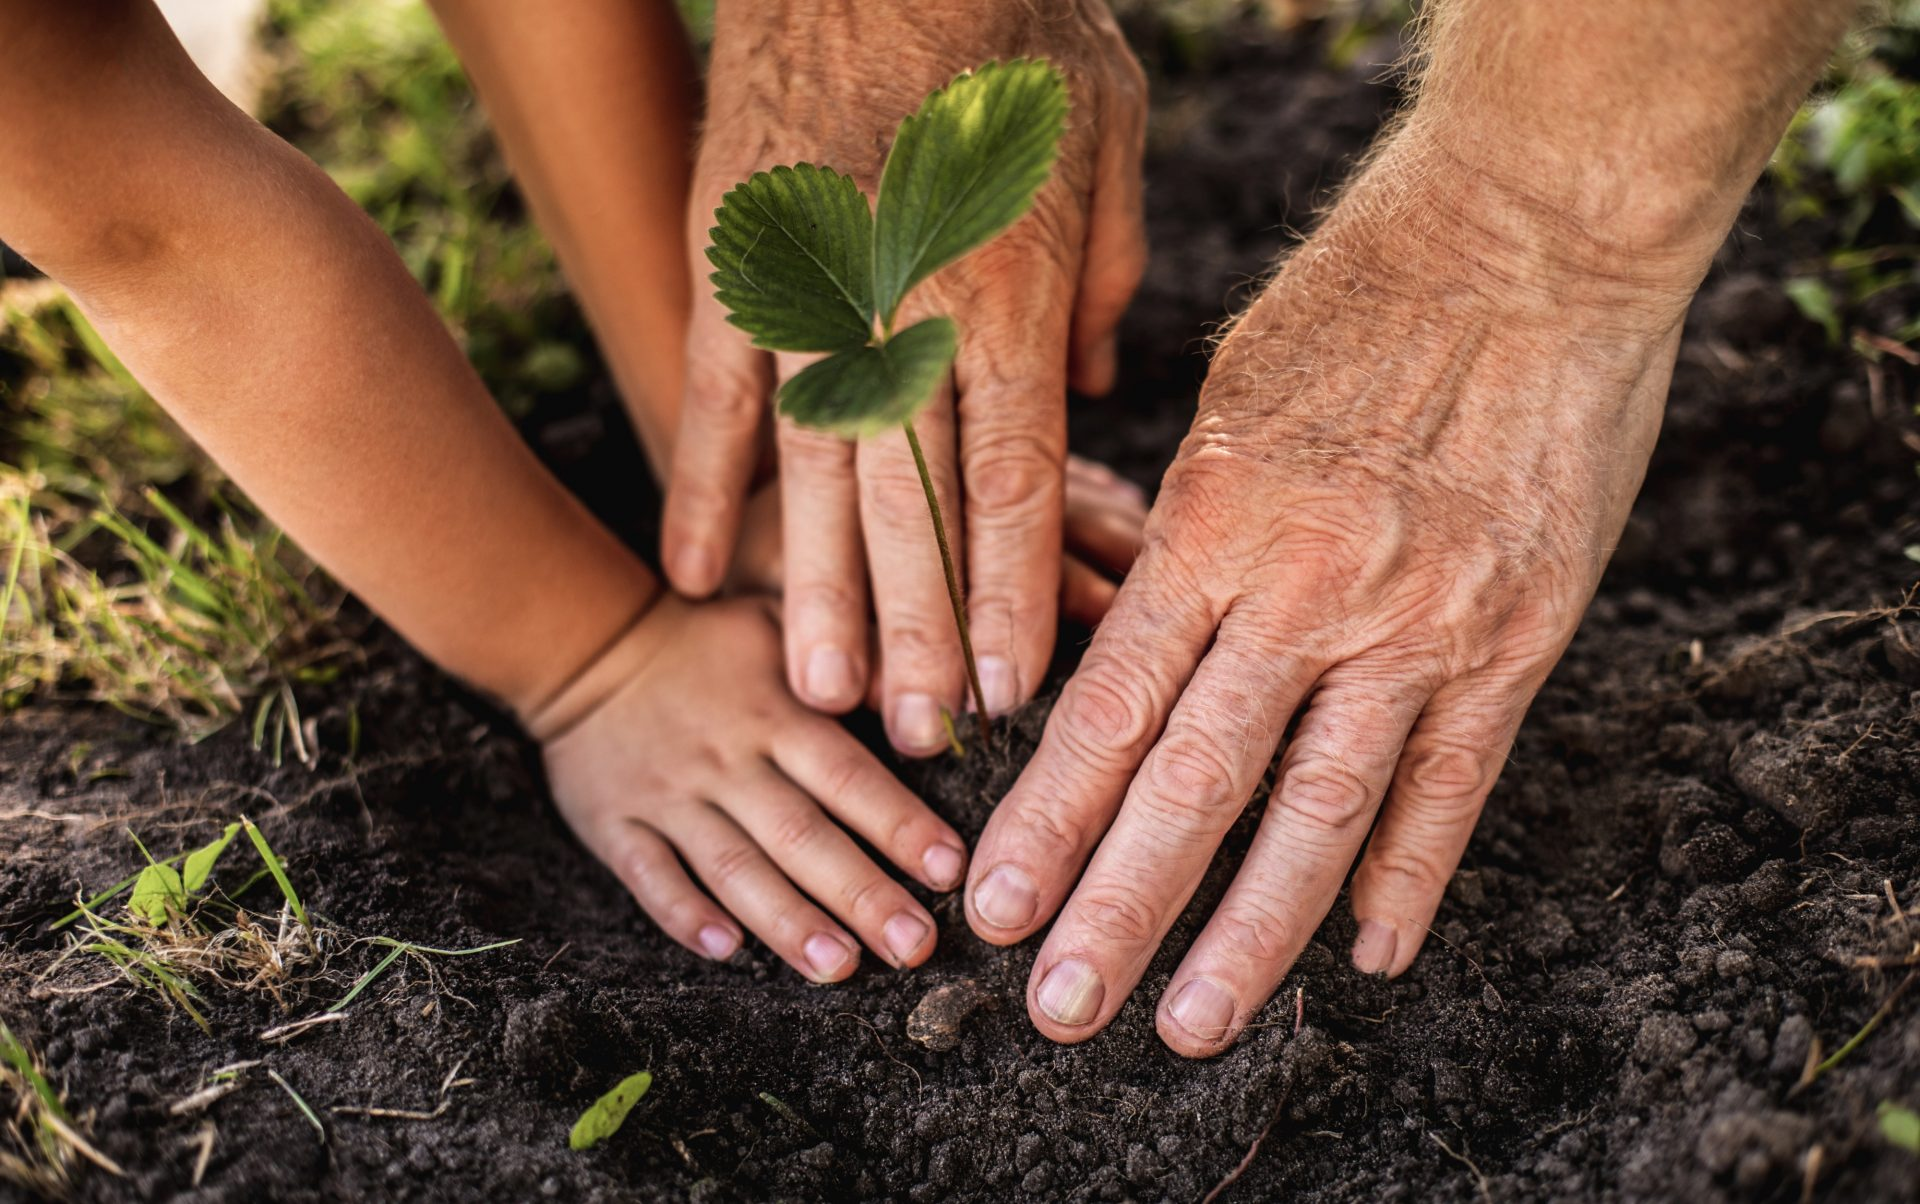 Two pair of hands, old and young, gardening.